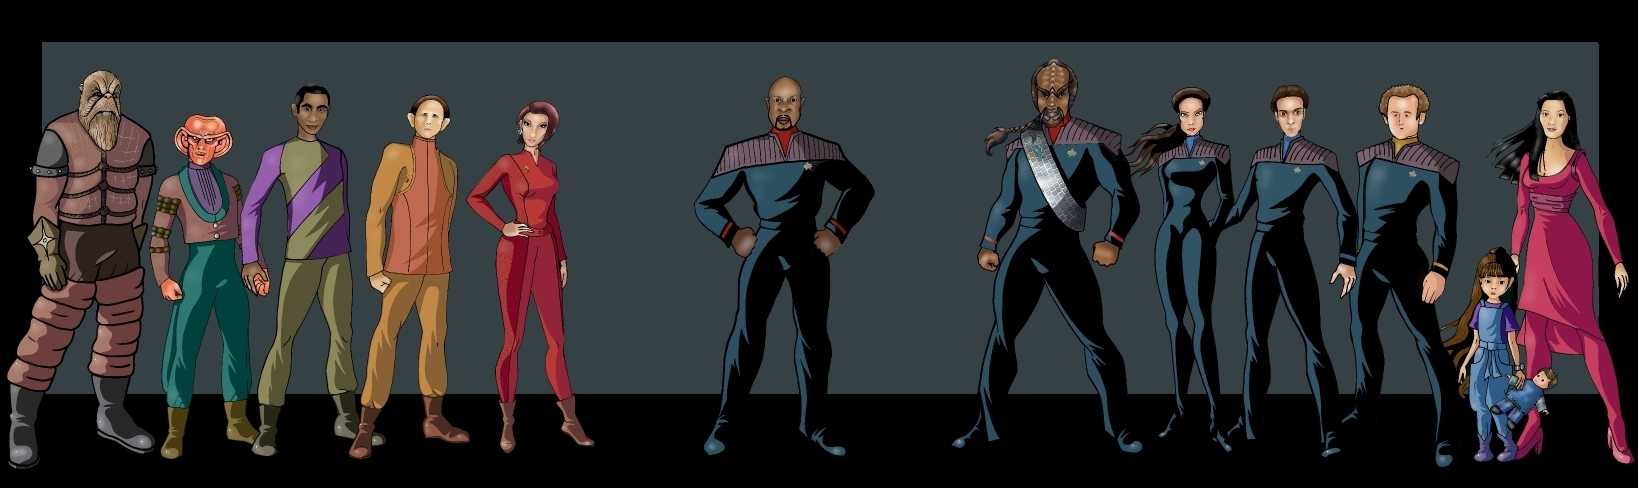 DS9 characters